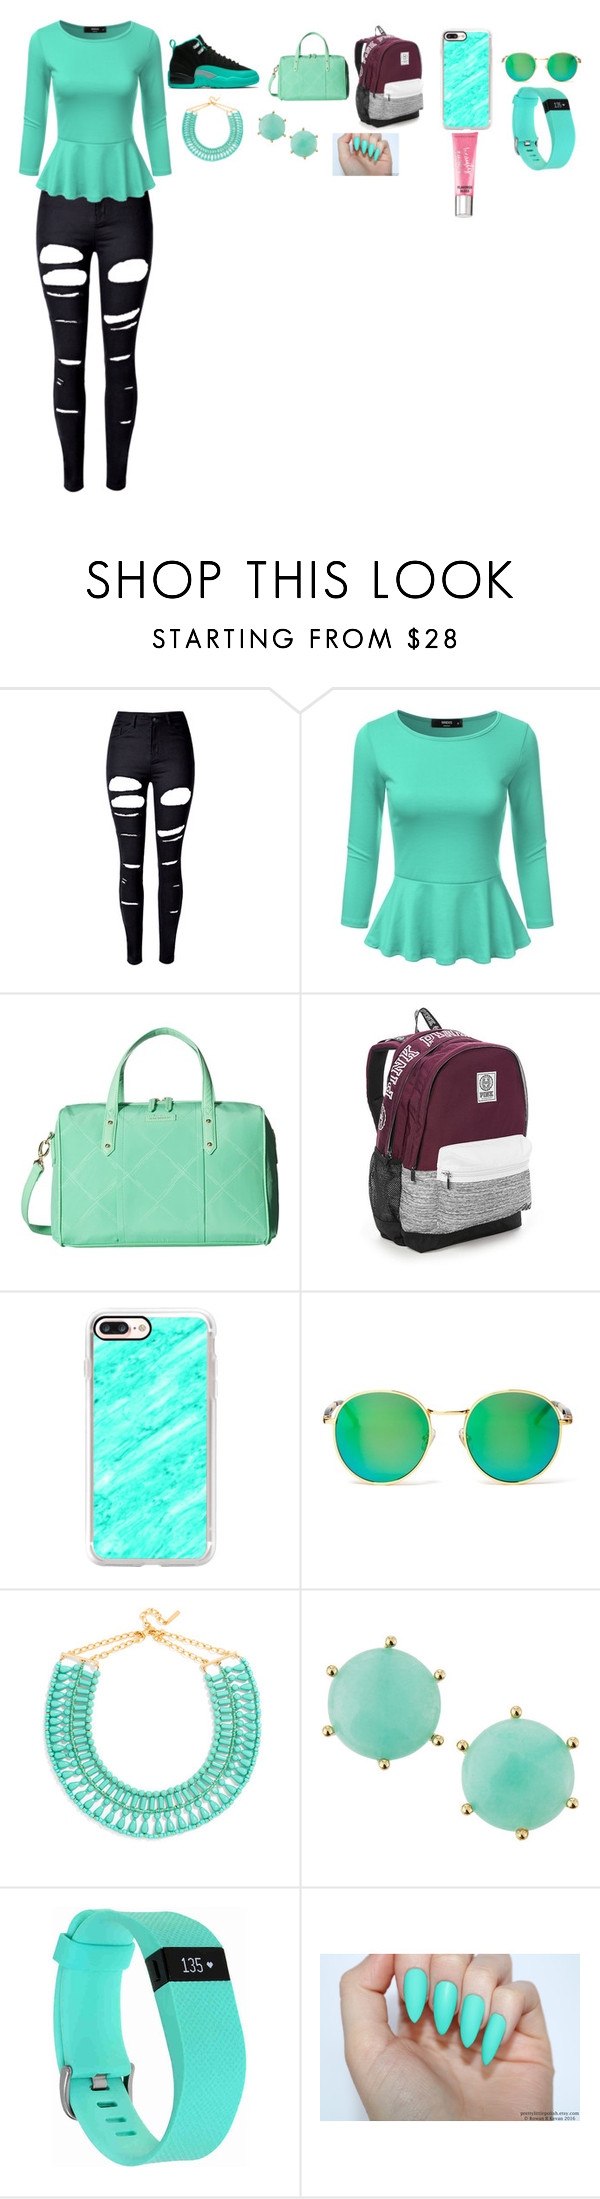 """Untitled #147"" by keshalove-1 ❤ liked on Polyvore featuring WithChic, Vera Bradley, Victoria's Secret, Casetify, Wildfox, BaubleBar, Panacea, Fitbit and Beauty Rush"